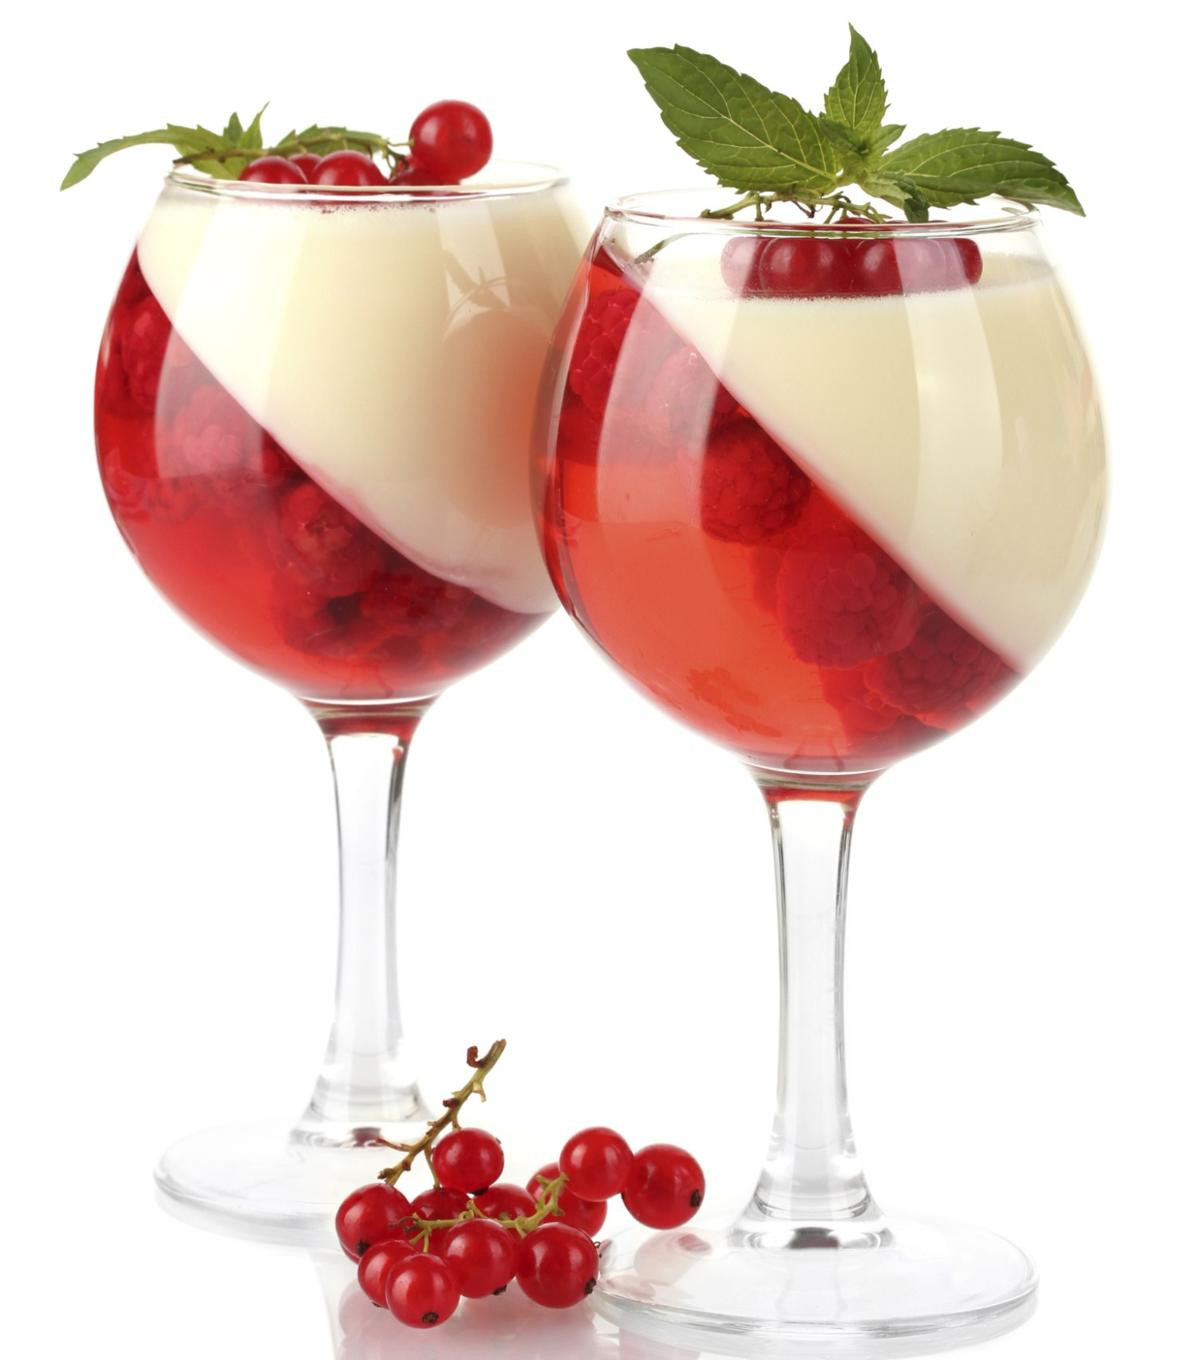 Cool Whip Desserts With Jello  raspberry cool whip dessert